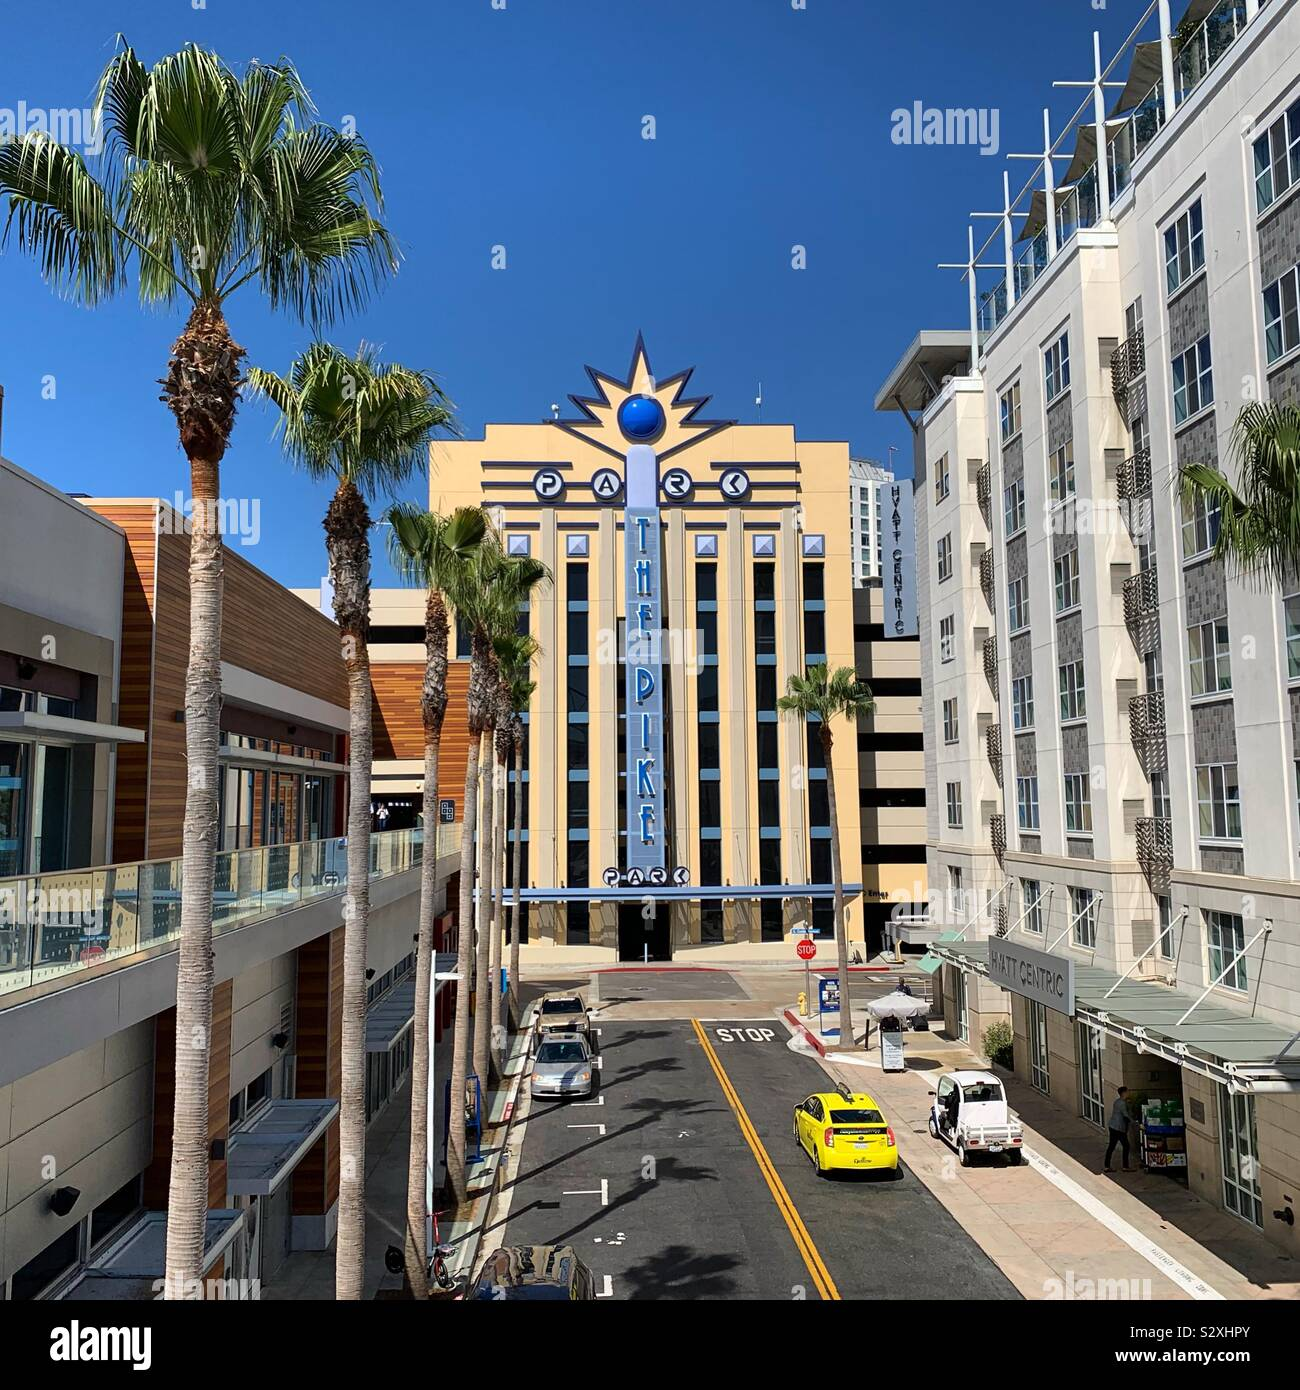 Looking Towards The Pike Outlets Parking Garage Hyatt Centric The Pike Long Beach To The Right Long Beach California United States Stock Photo Alamy